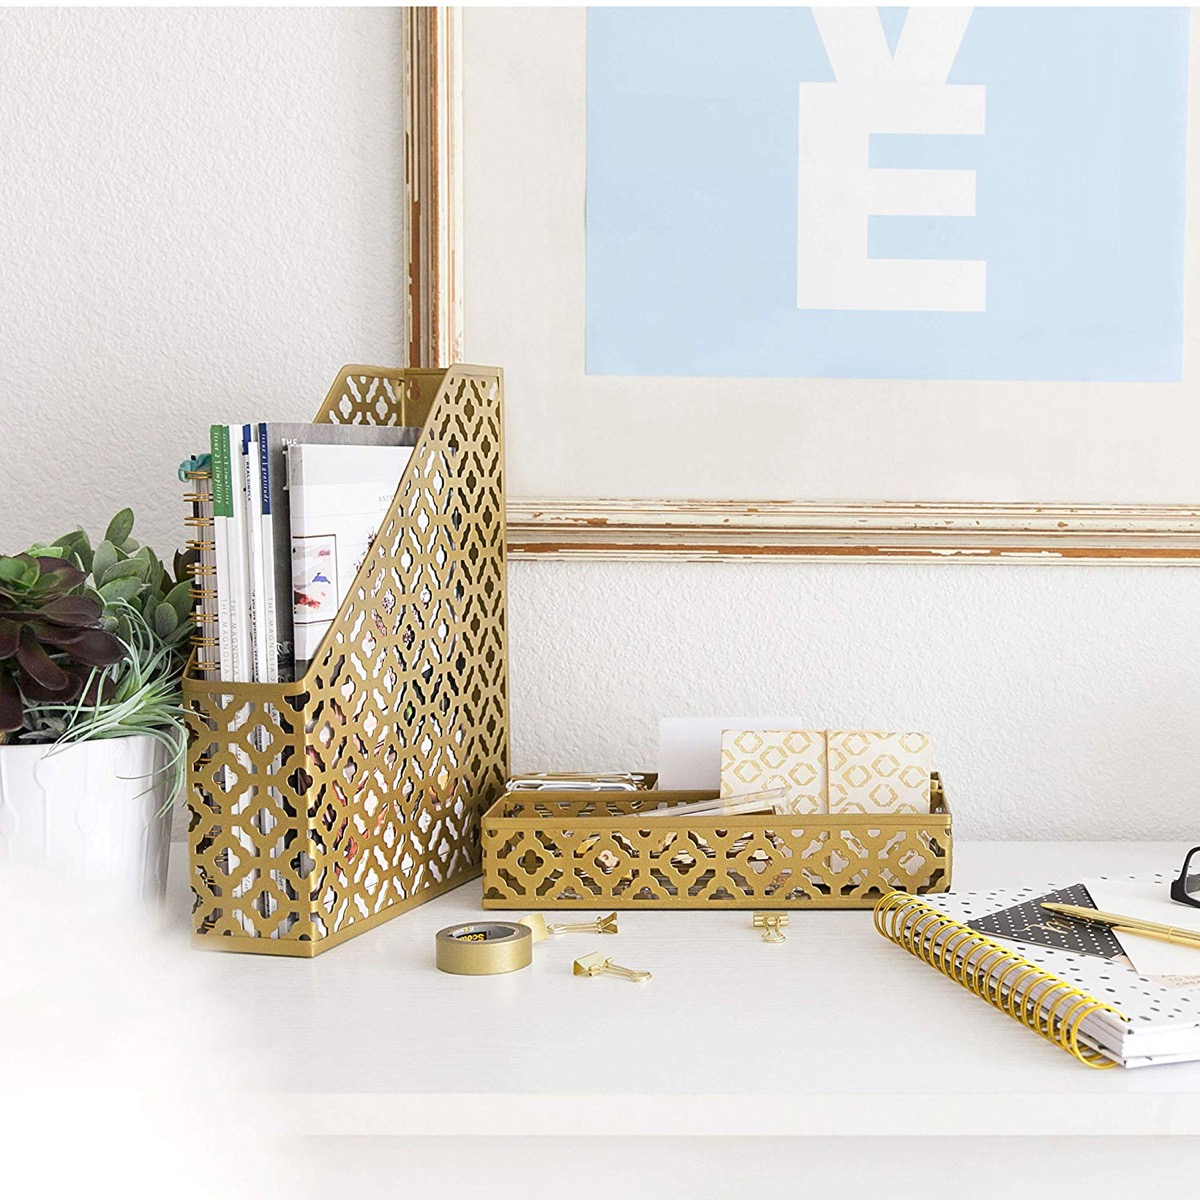 Gold-Finish-Magazine-Rack-Desk-Organizer-Set-Caddy-Pencil-Holder-File-Holder